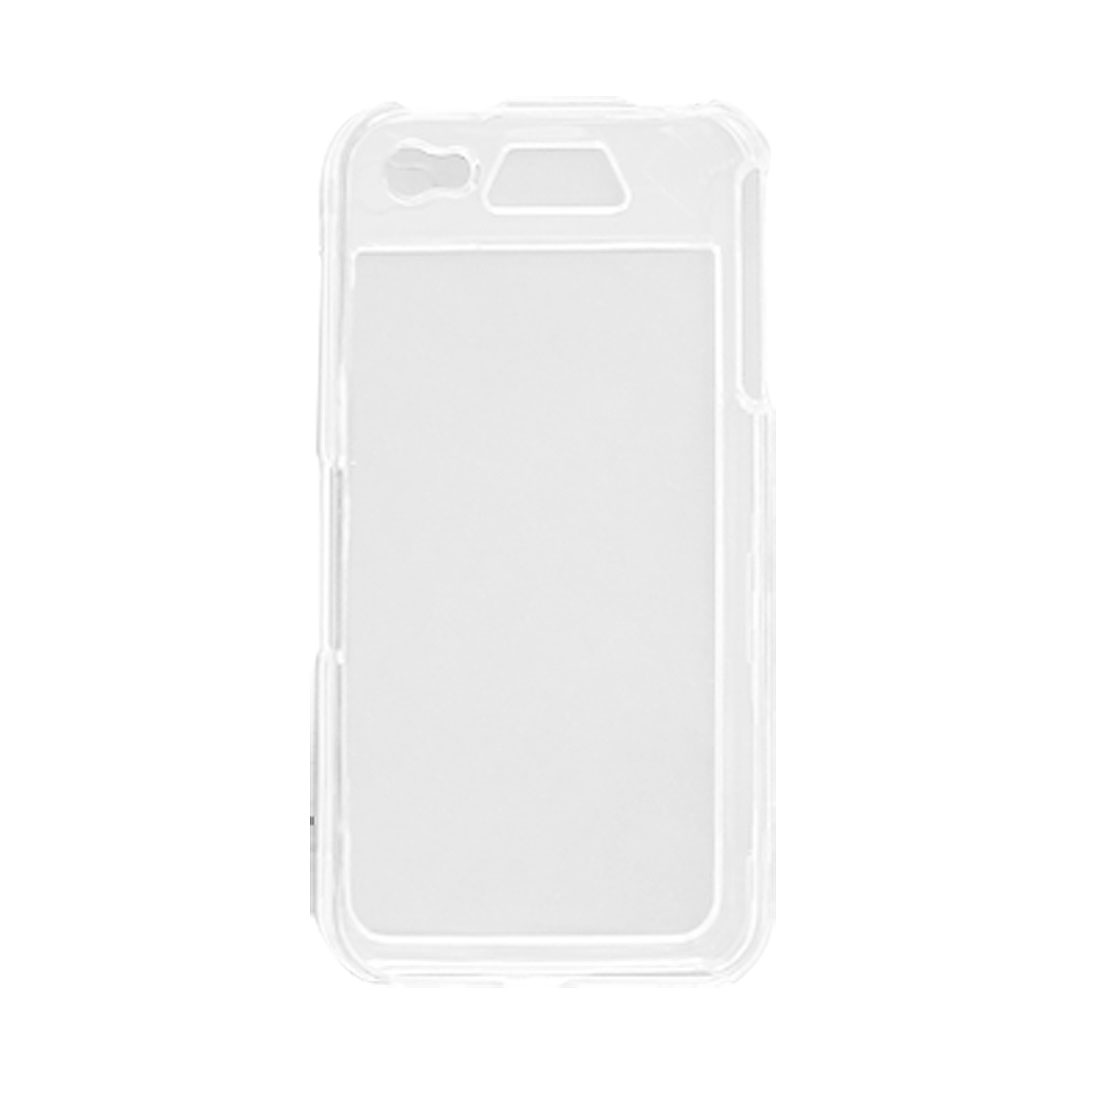 Clear Crystal Plastic Case w Grey Sports Armband Holder for iPhone 4 4G